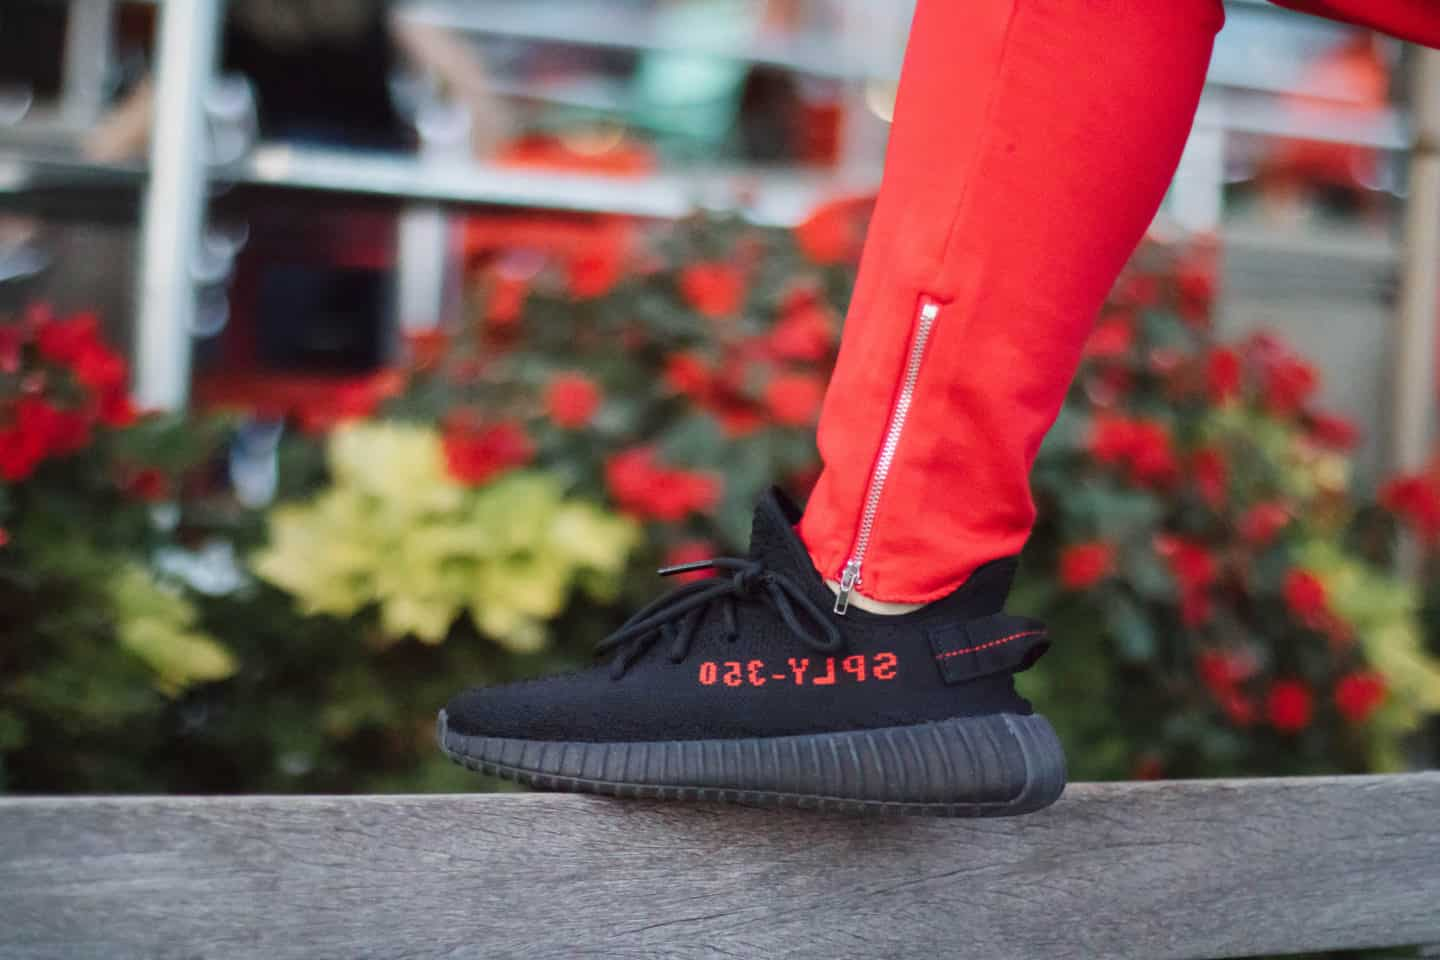 How to style Adidas Yeezy Boosts for girls, plus tips on how to score your own Yeezys!